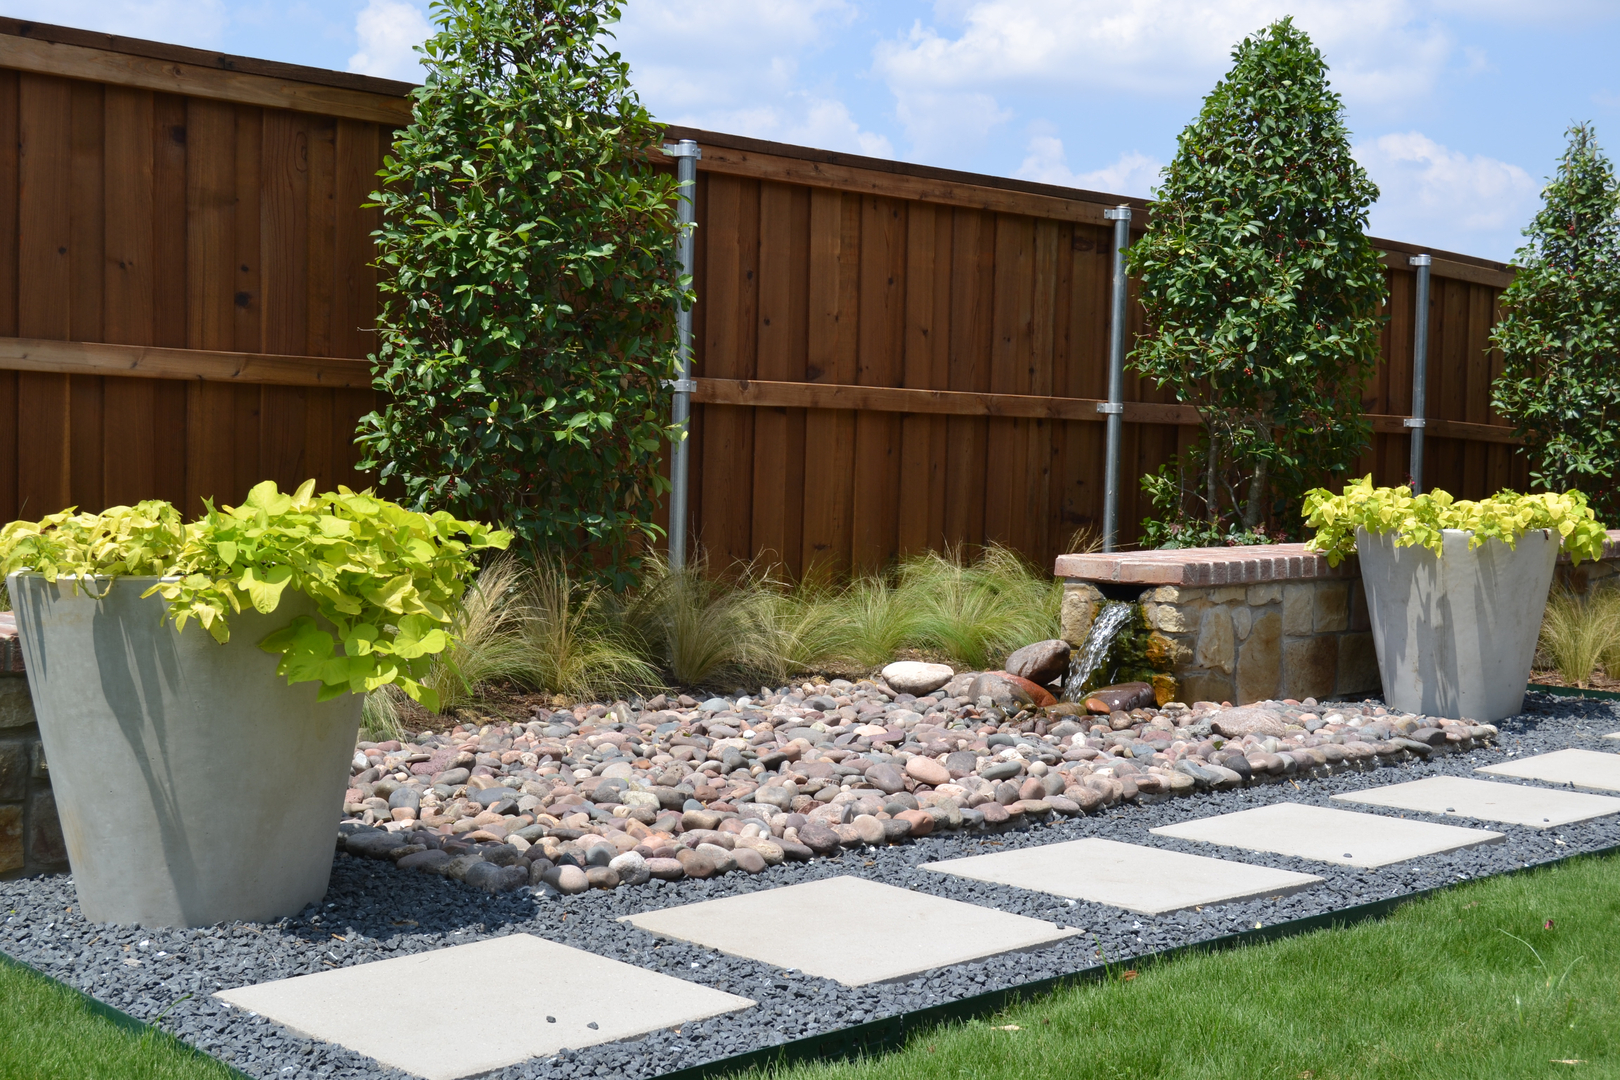 garden design landscaping.  Garden Design Landscaping in Dallas